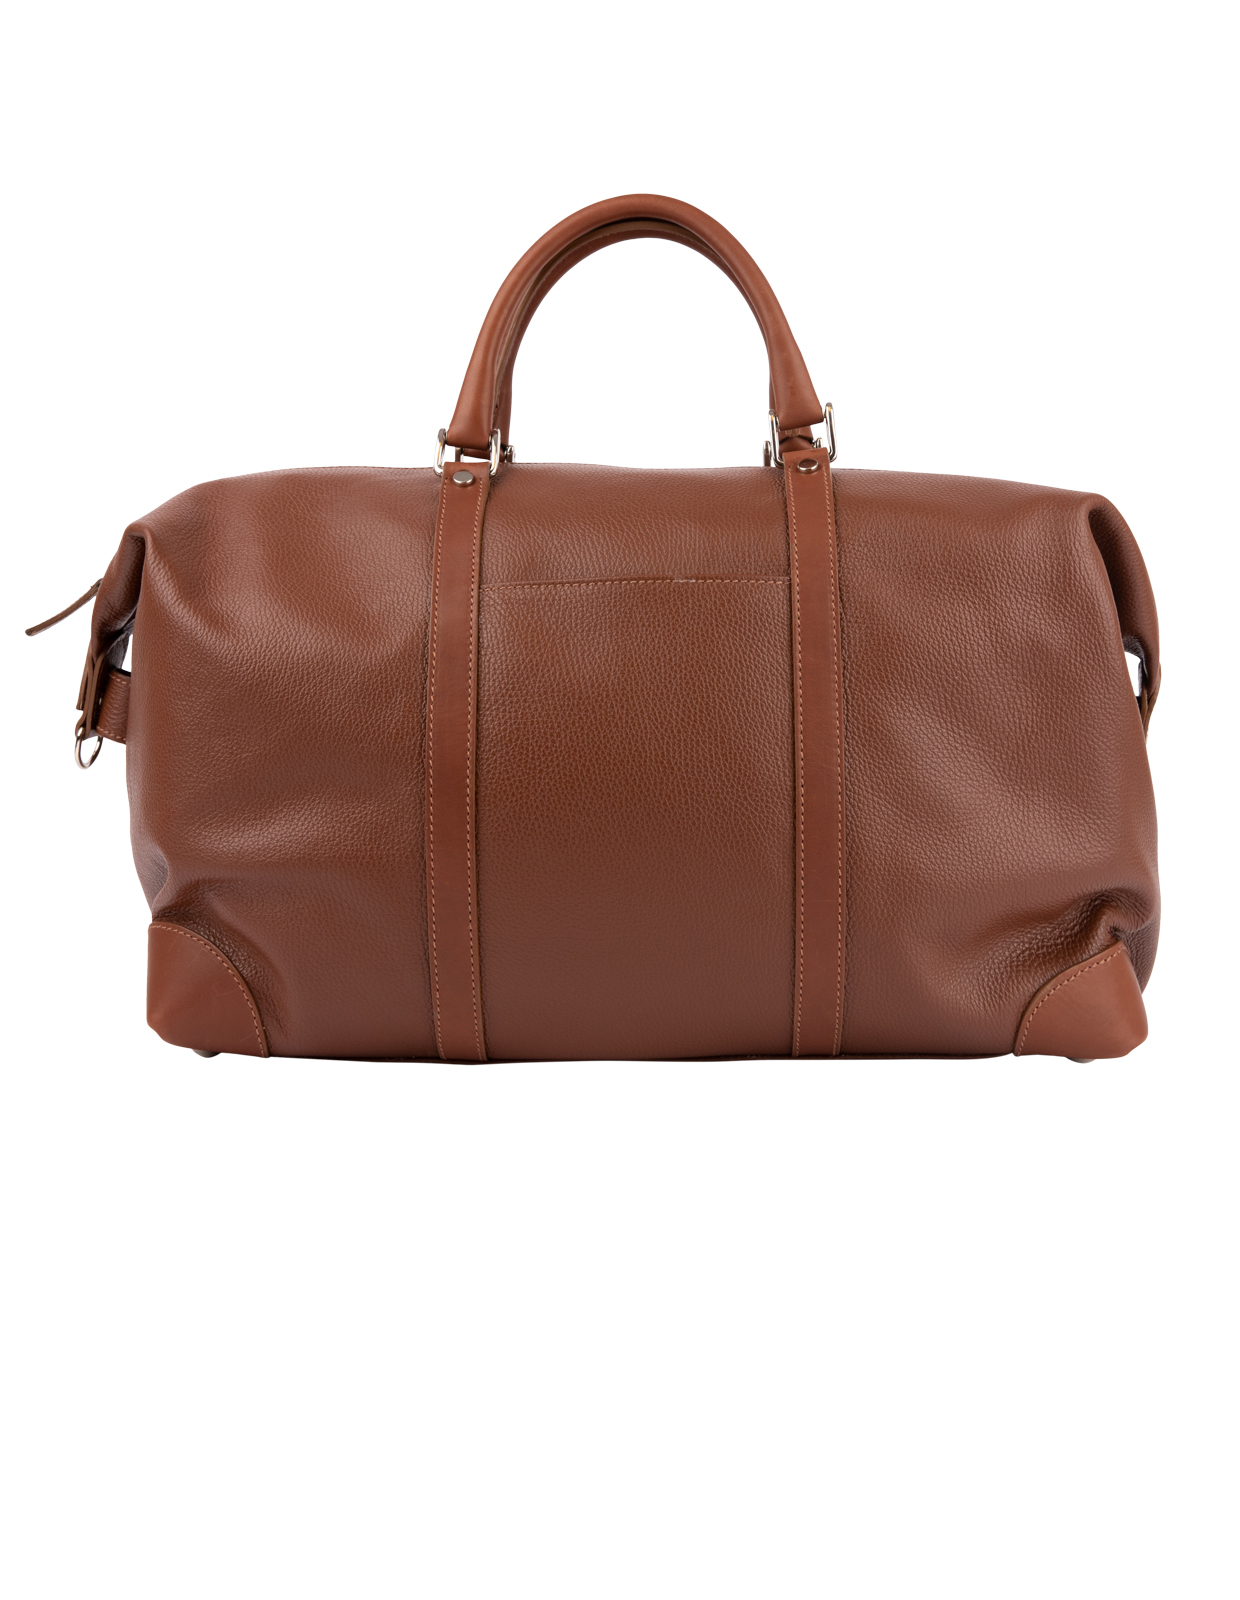 Weekend Bag Bottalato Leather Tabacco